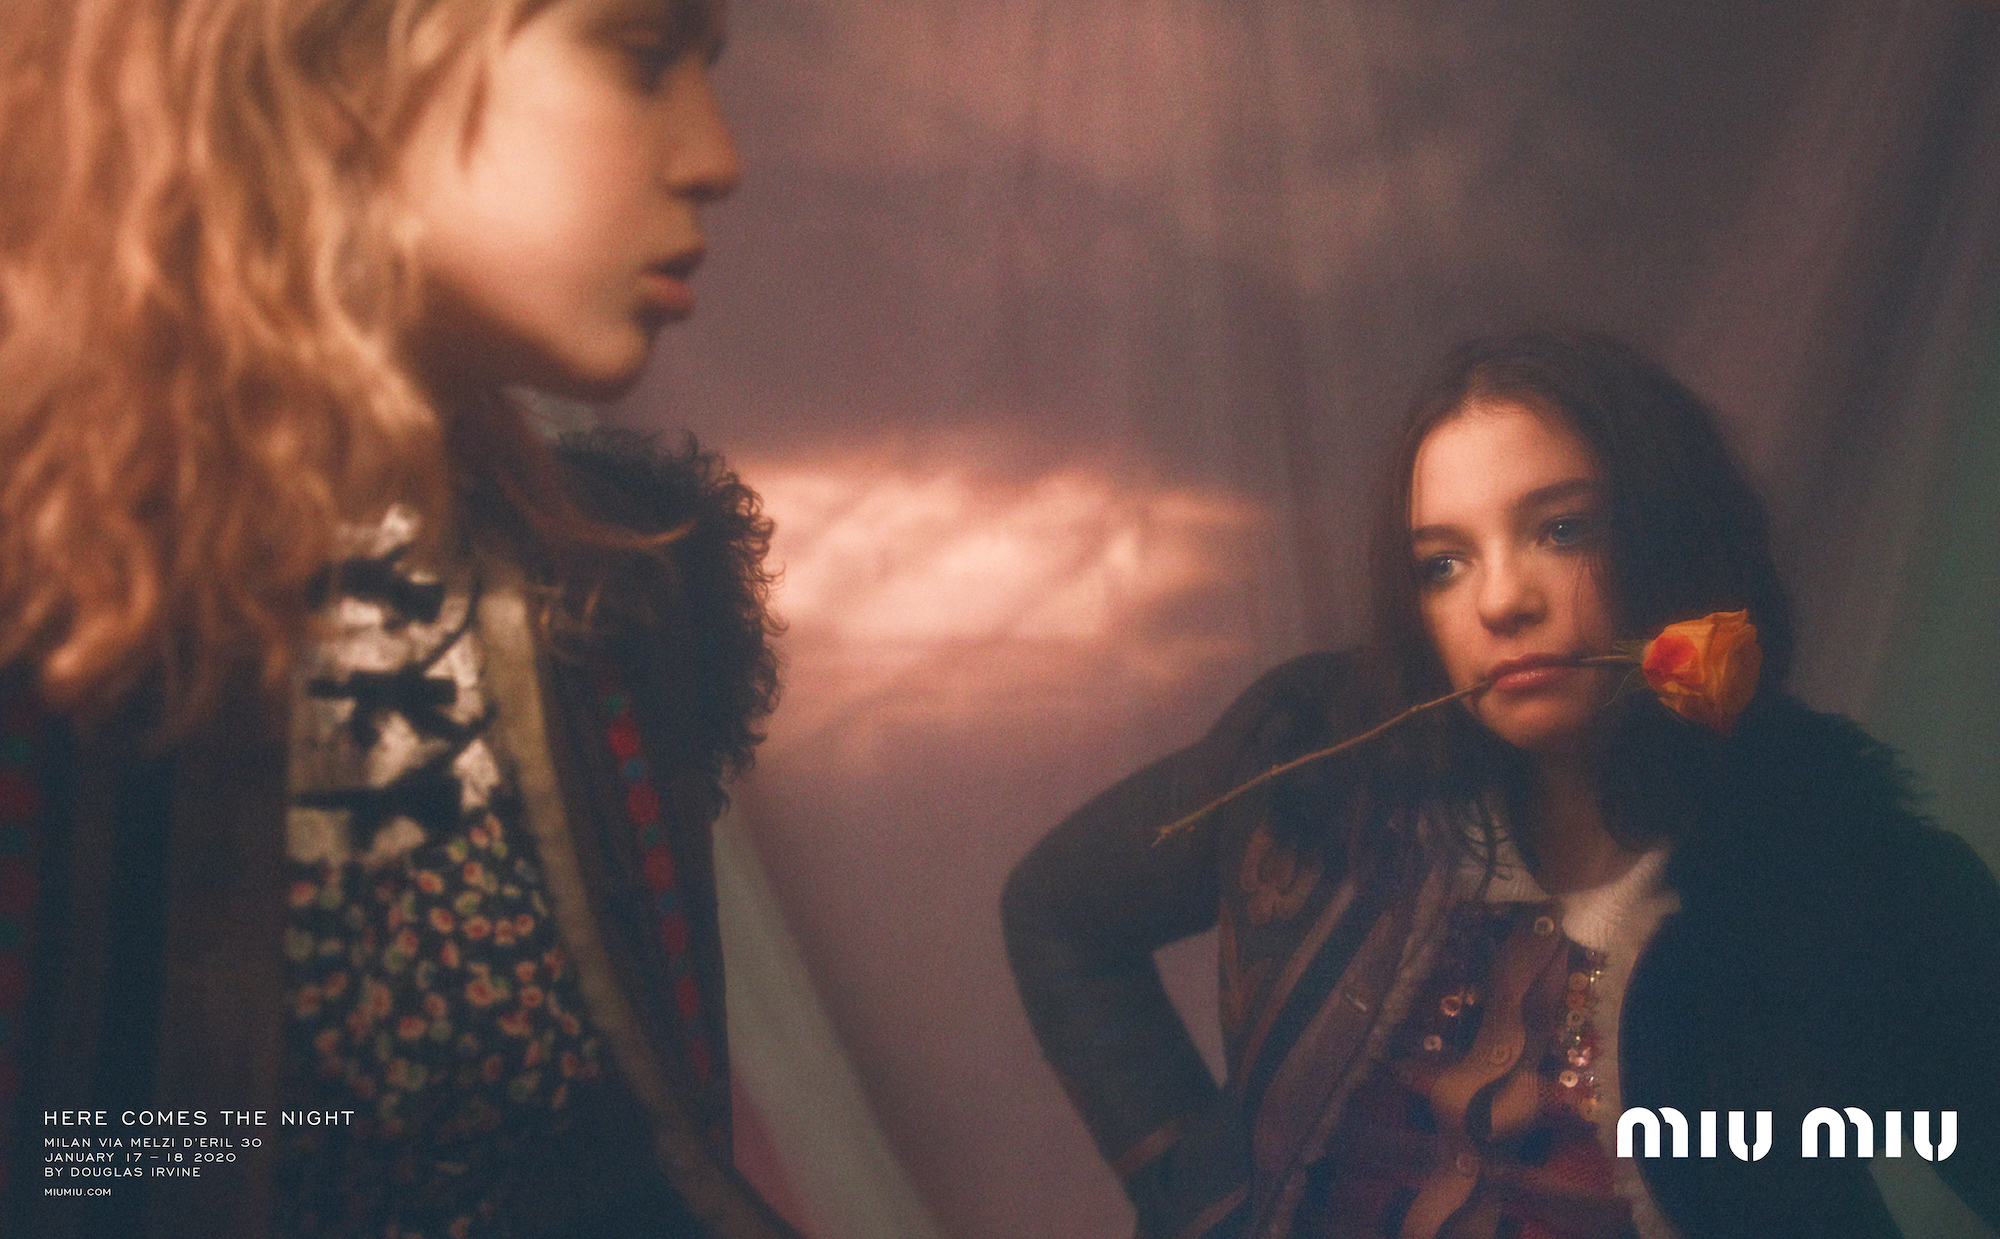 Miu Miu automne 20 campaign two girls rose in mouth